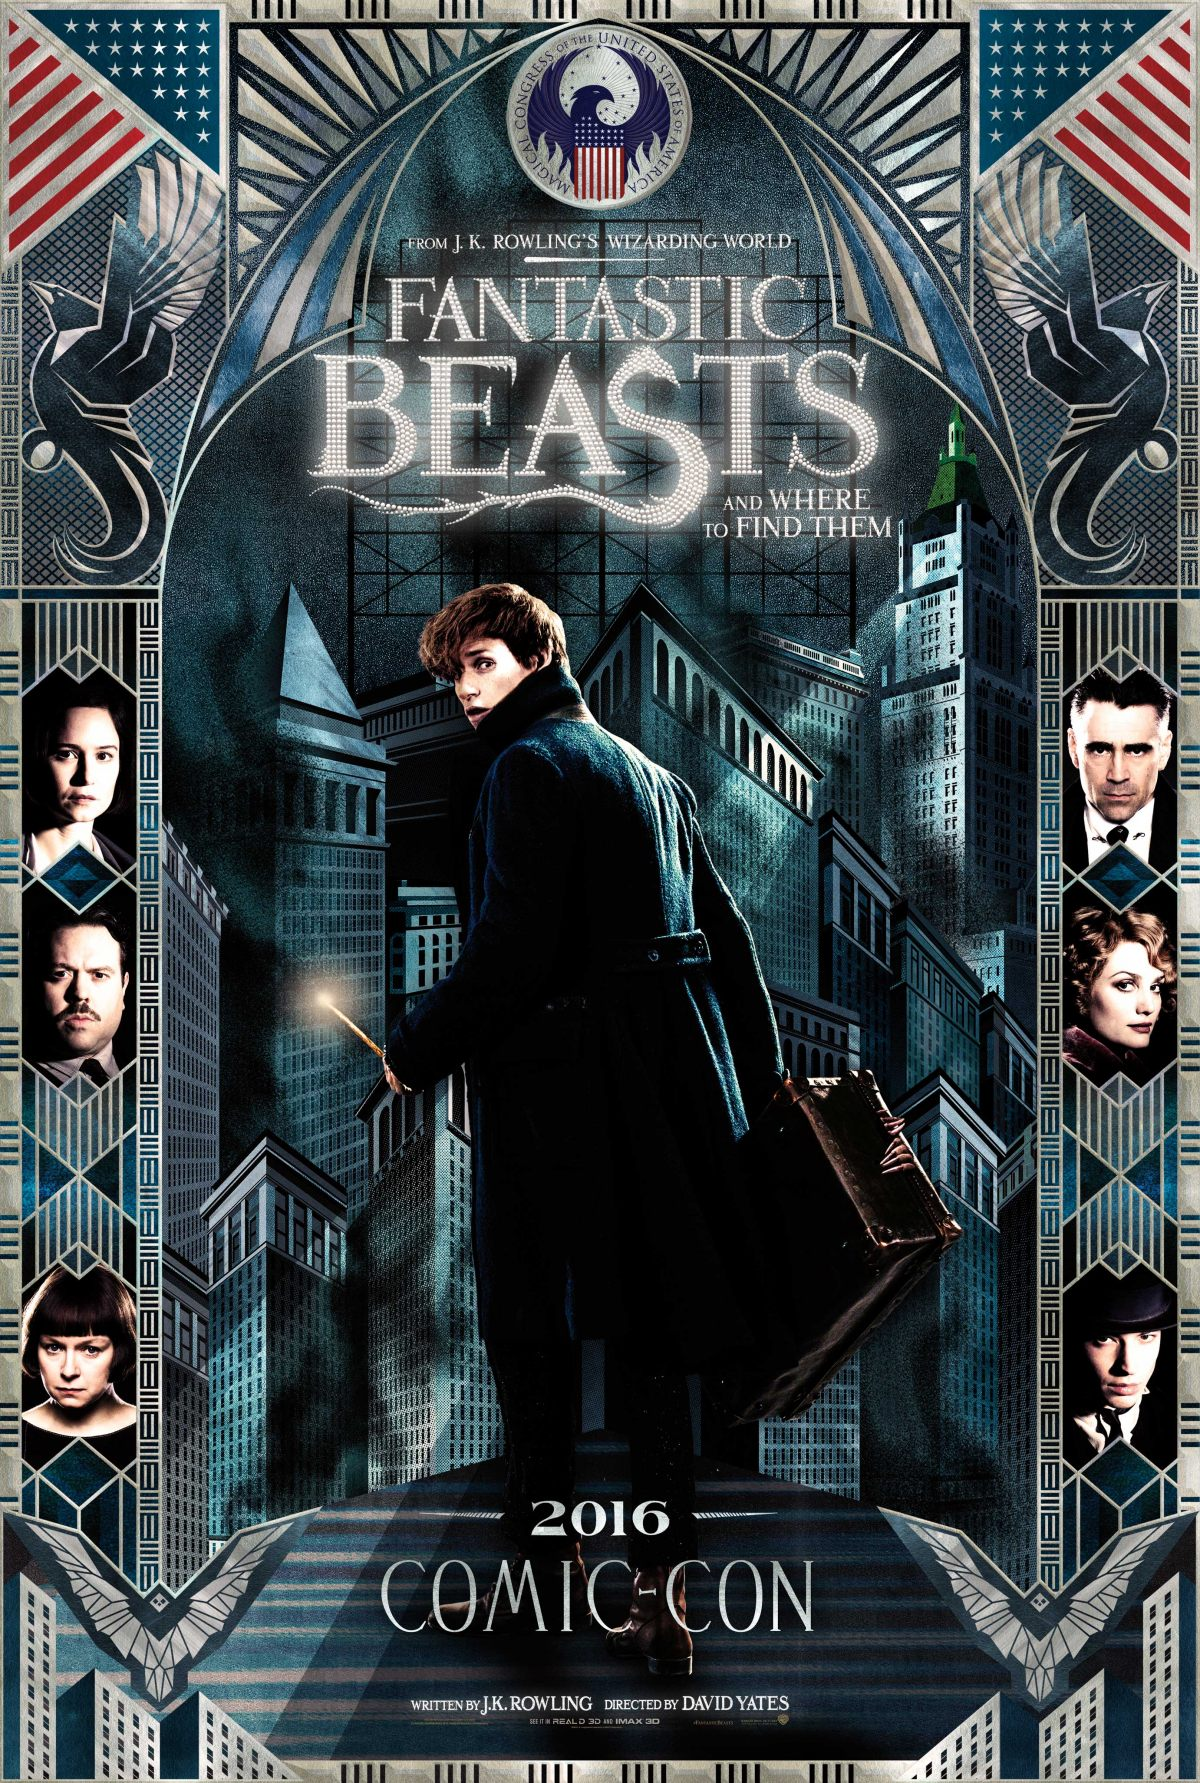 Fantastic-Beasts-SDCC-Poster_1200_1783_81_s